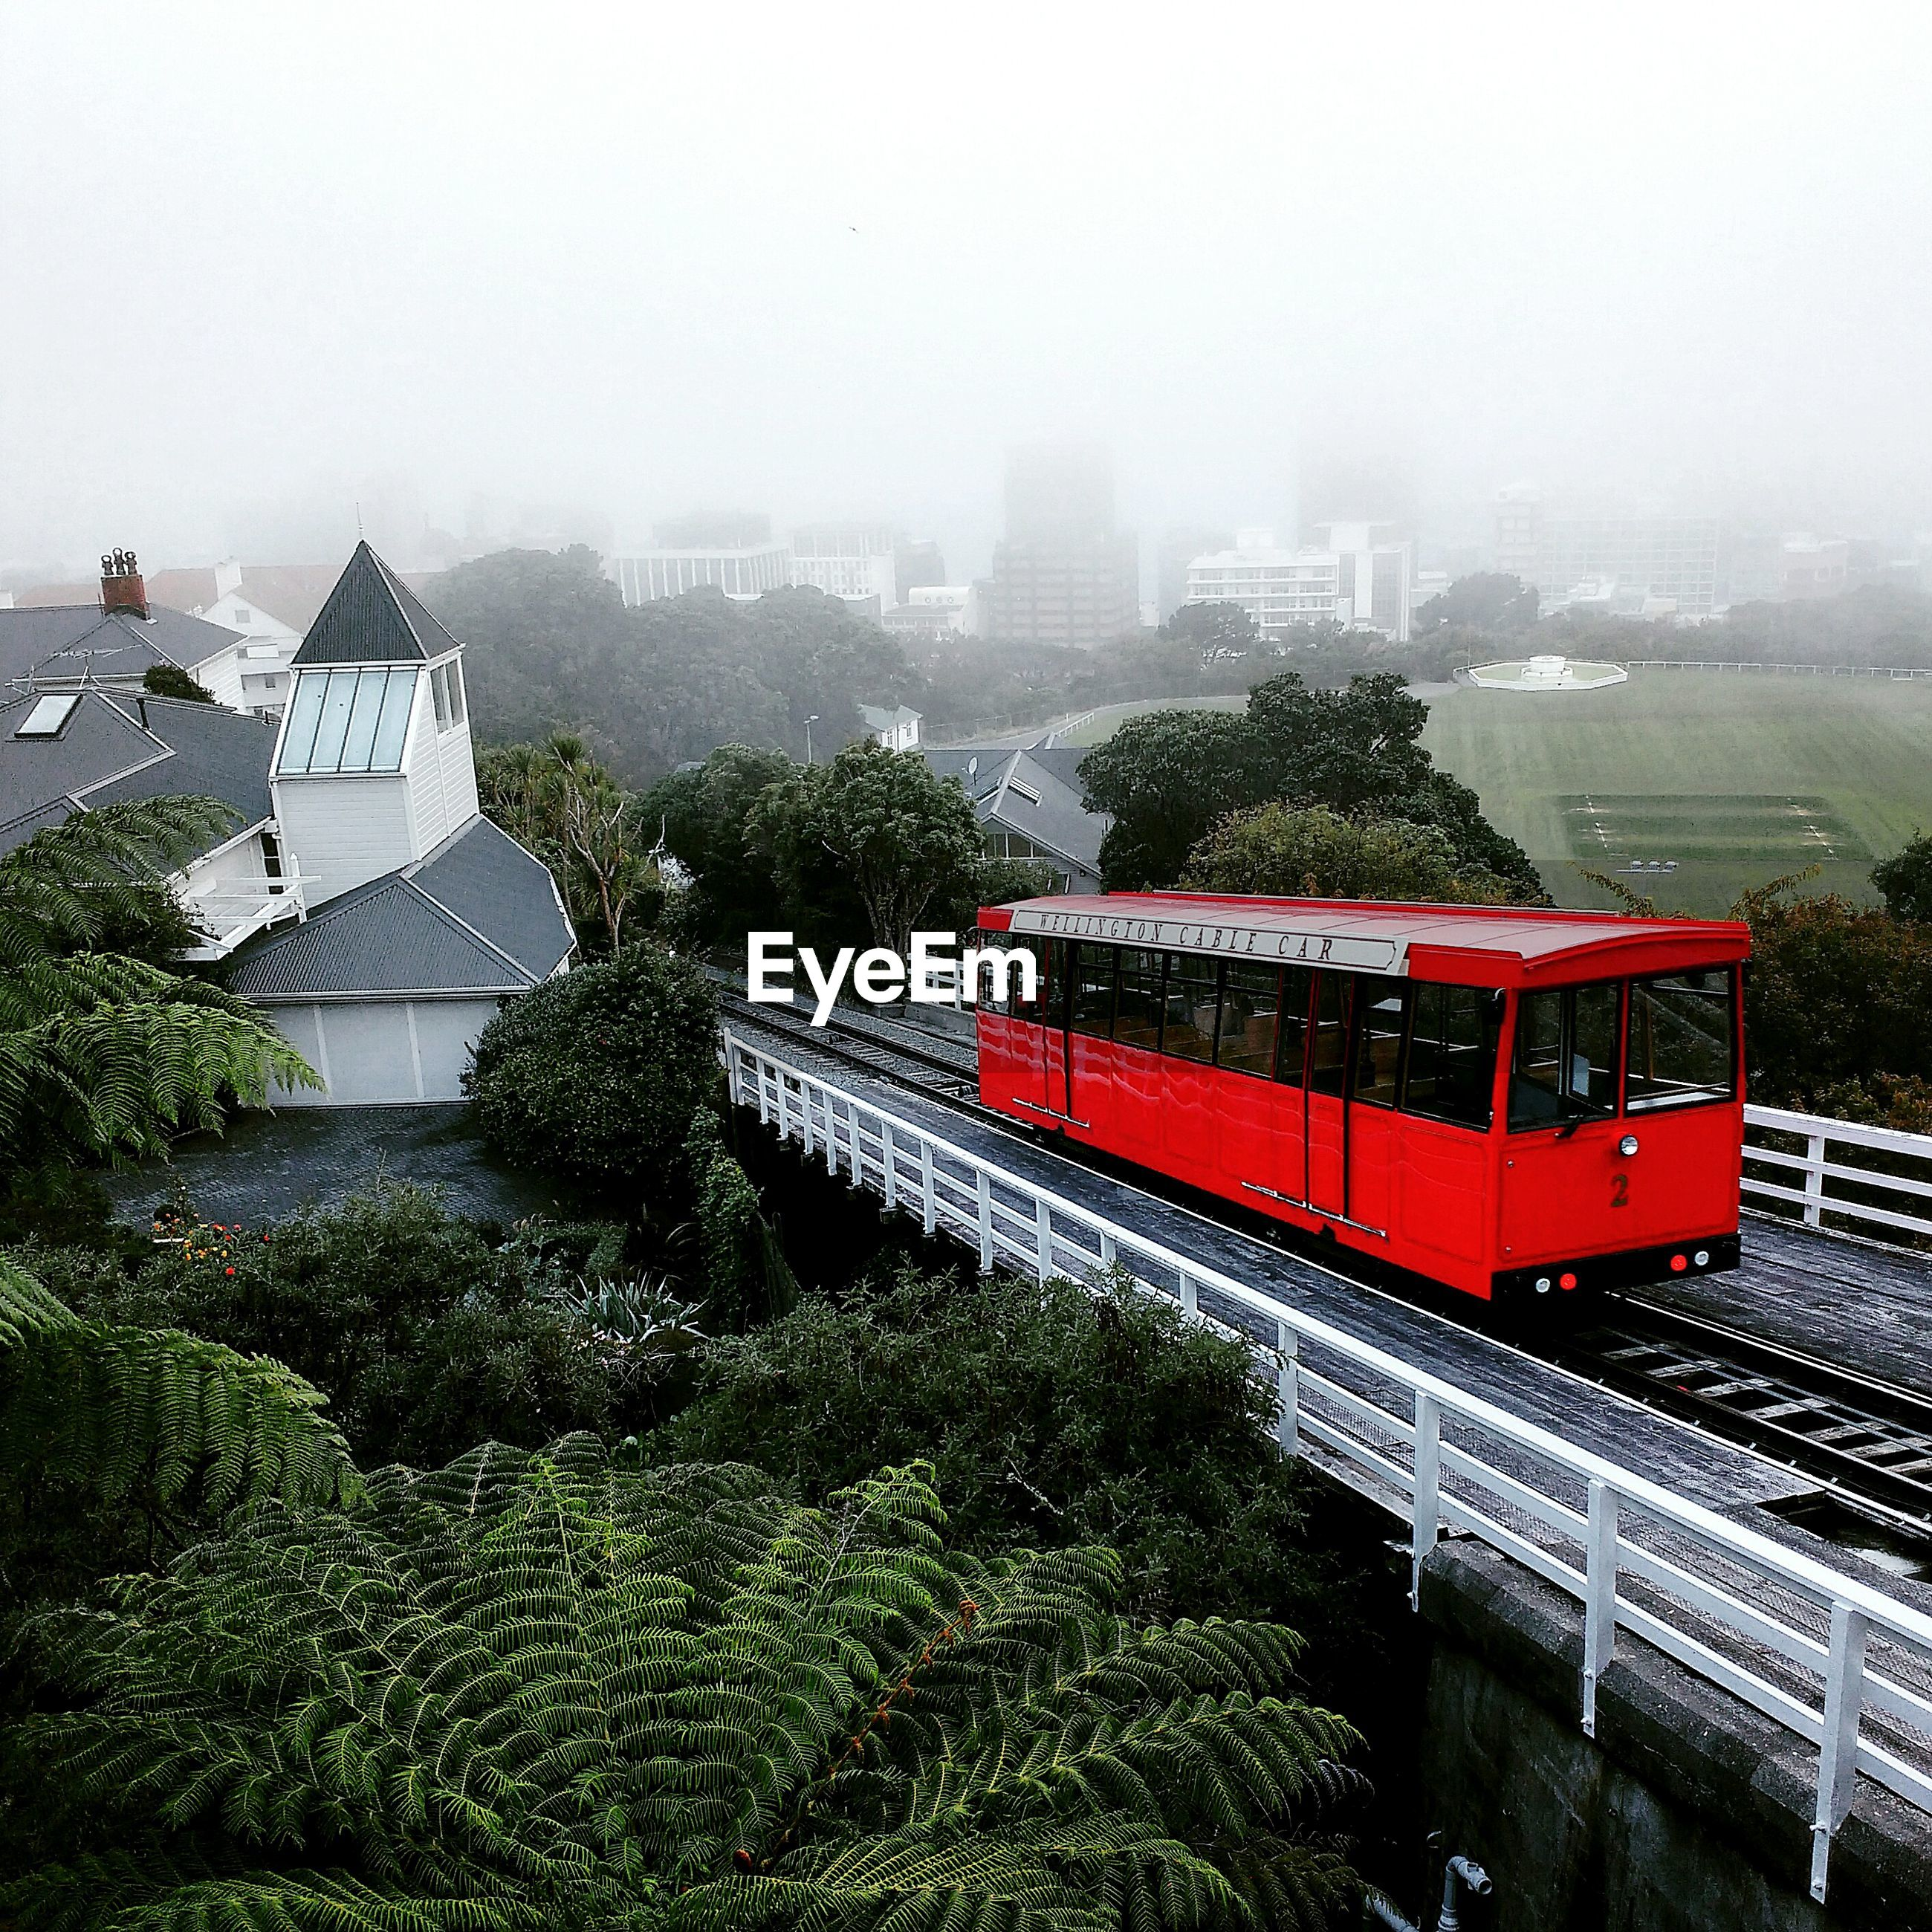 HIGH ANGLE VIEW OF TRAIN AMIDST TREES IN CITY